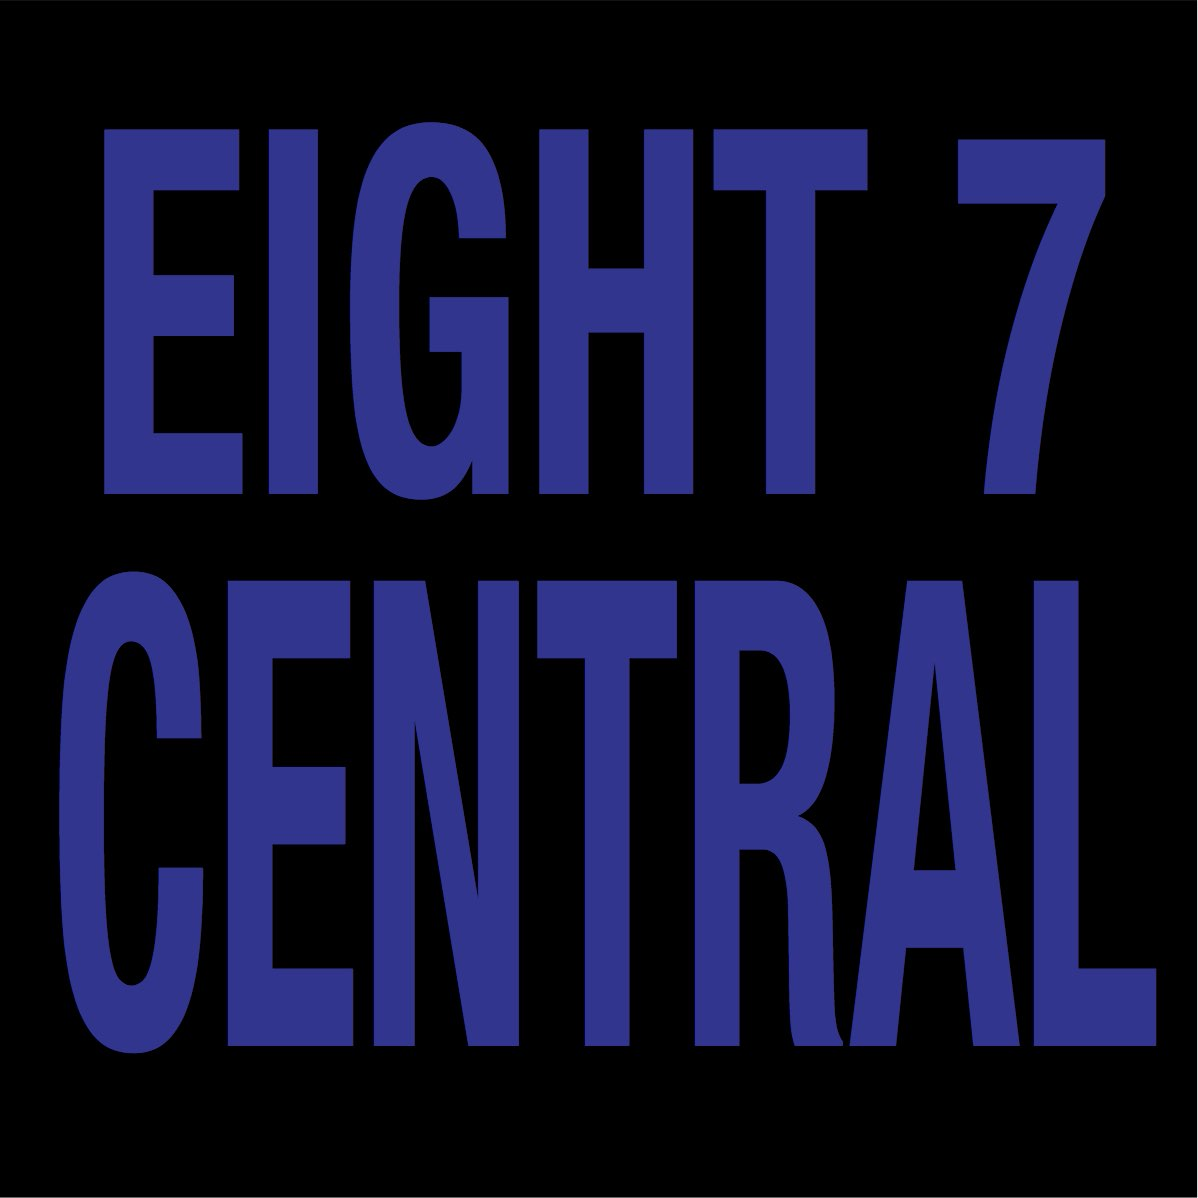 Eight 7 Central